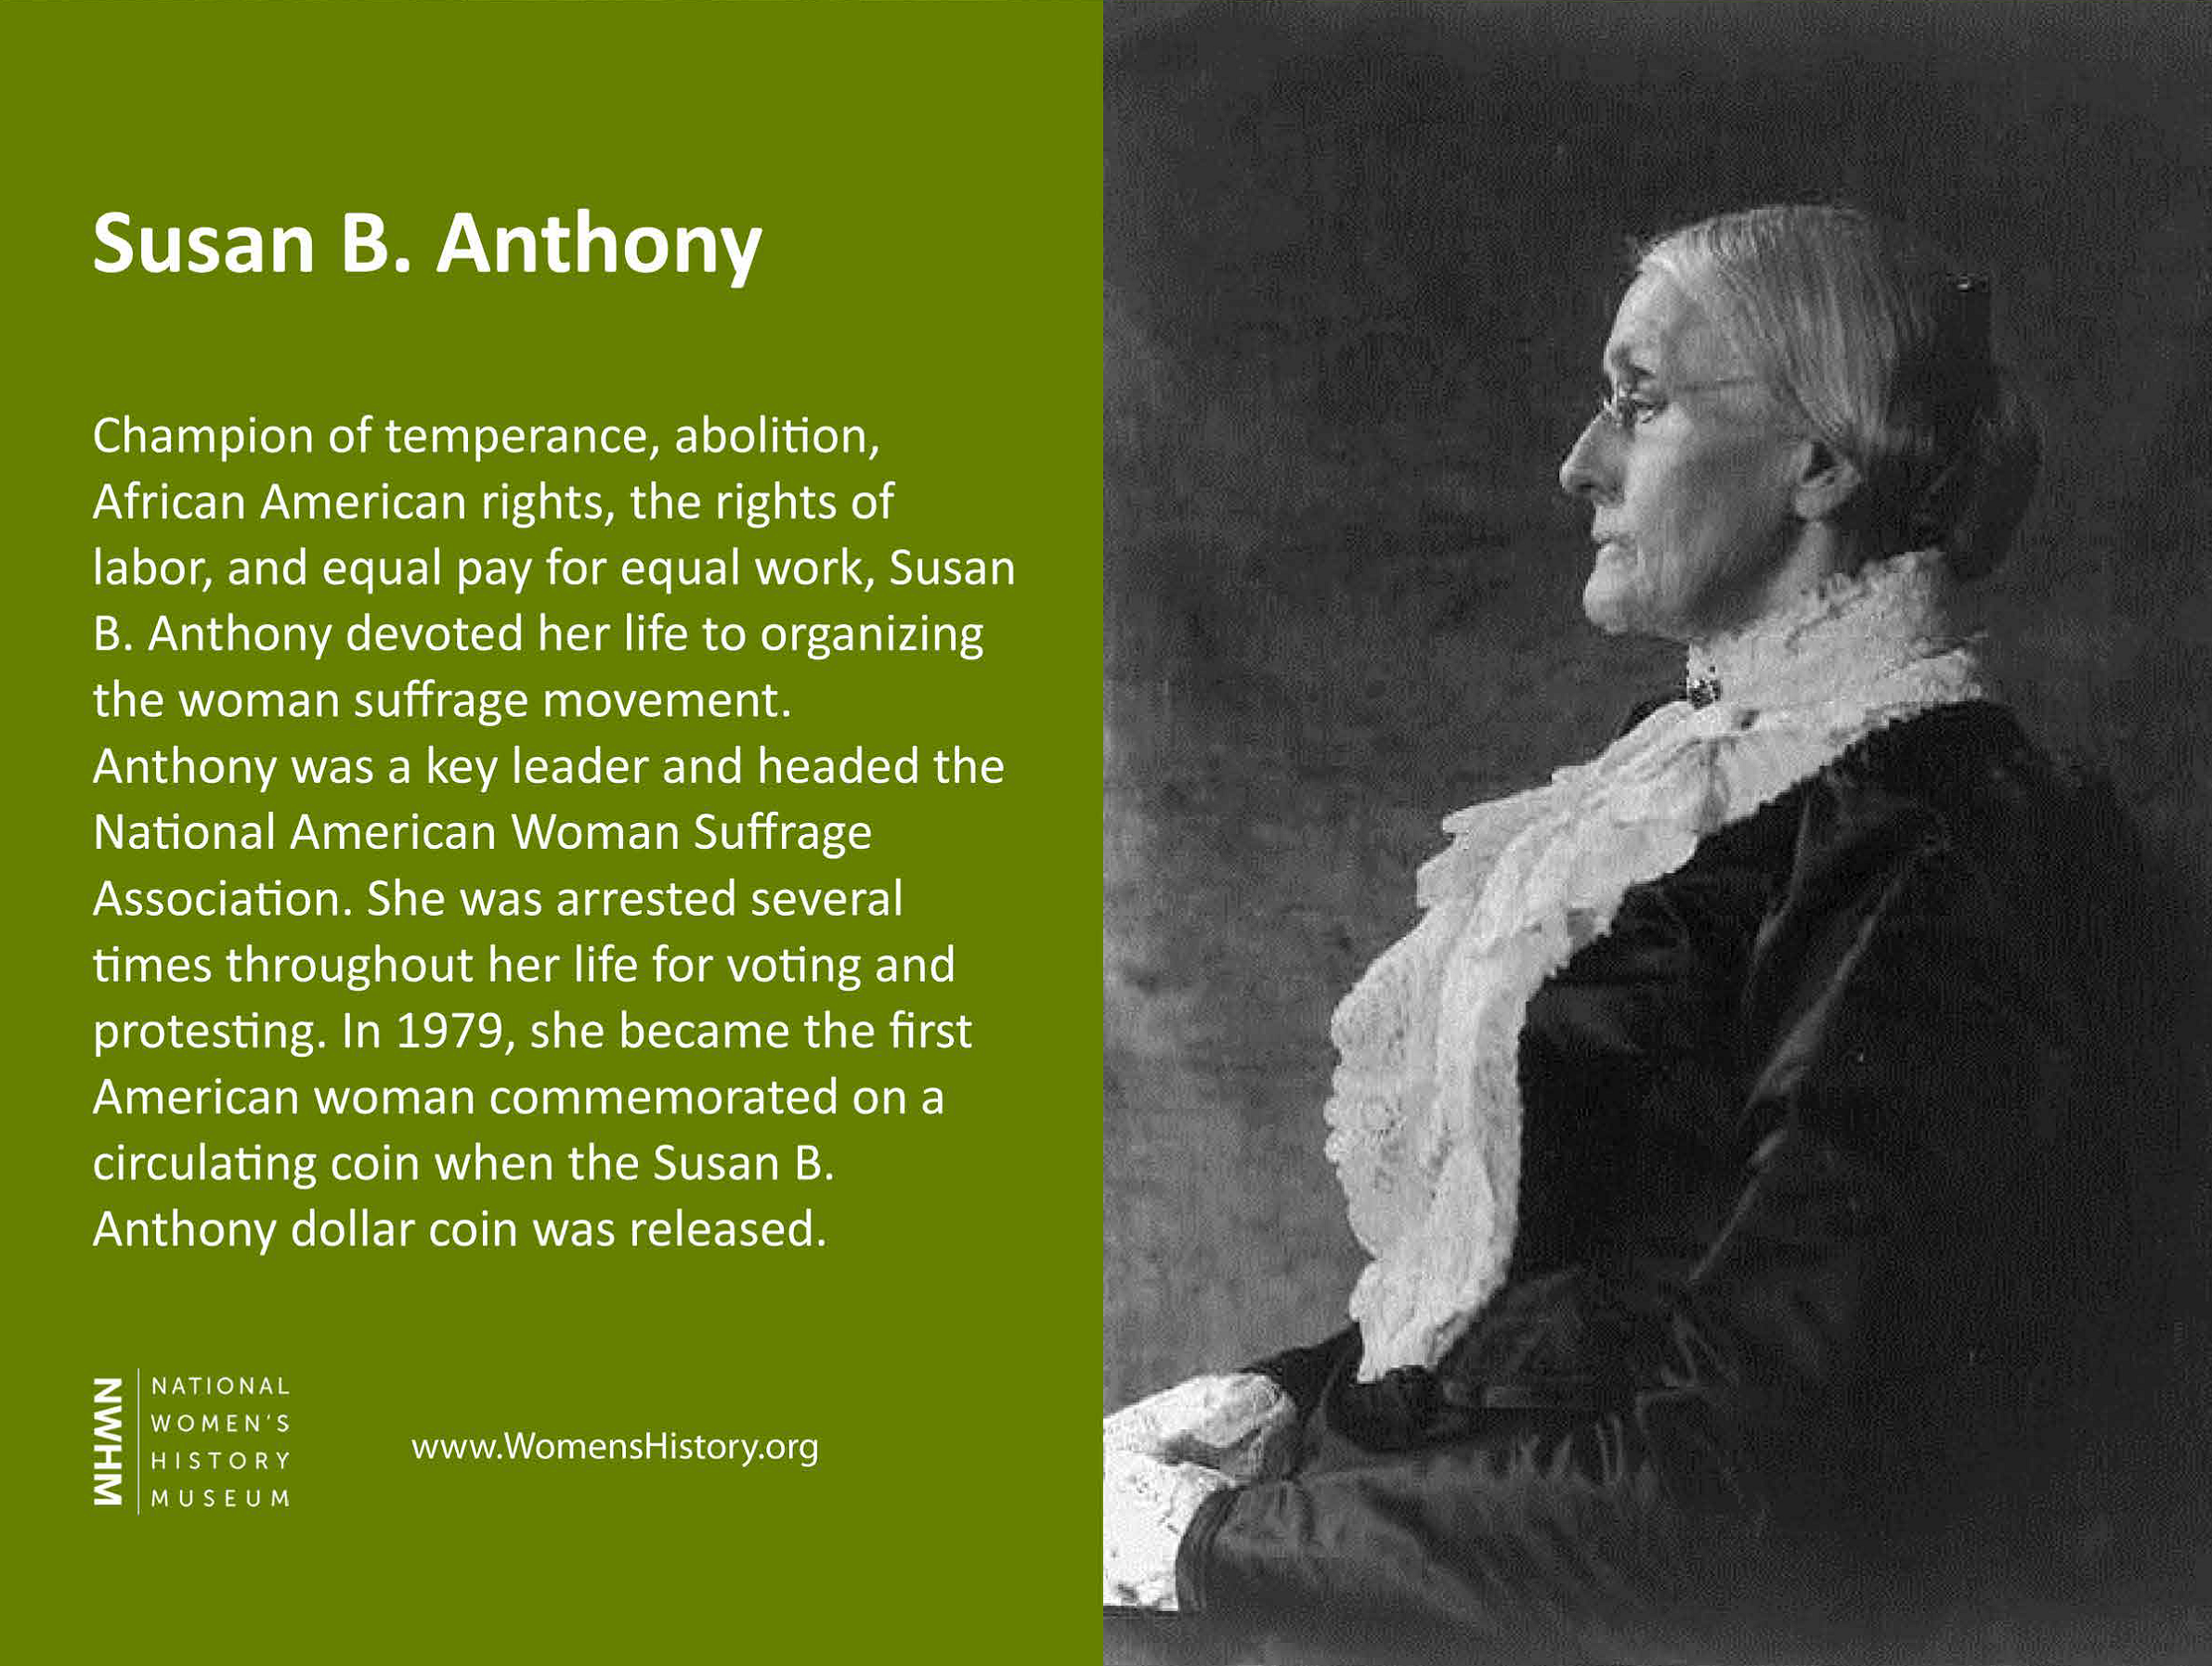 Champion of temperance, abolition, African American rights, the rights of labor, and equal pay for equal work, Susan B. Anthony devoted  her life to organizing the woman suffrage movement. Anthony was a key leader and headed the National American Woman Suffrage Association. She was arrested several times throughout her life for voting and protesting. In 1979, she became the first American woman commemorated on a circulating coin when the Susan B. Anthony dollar coin was released.